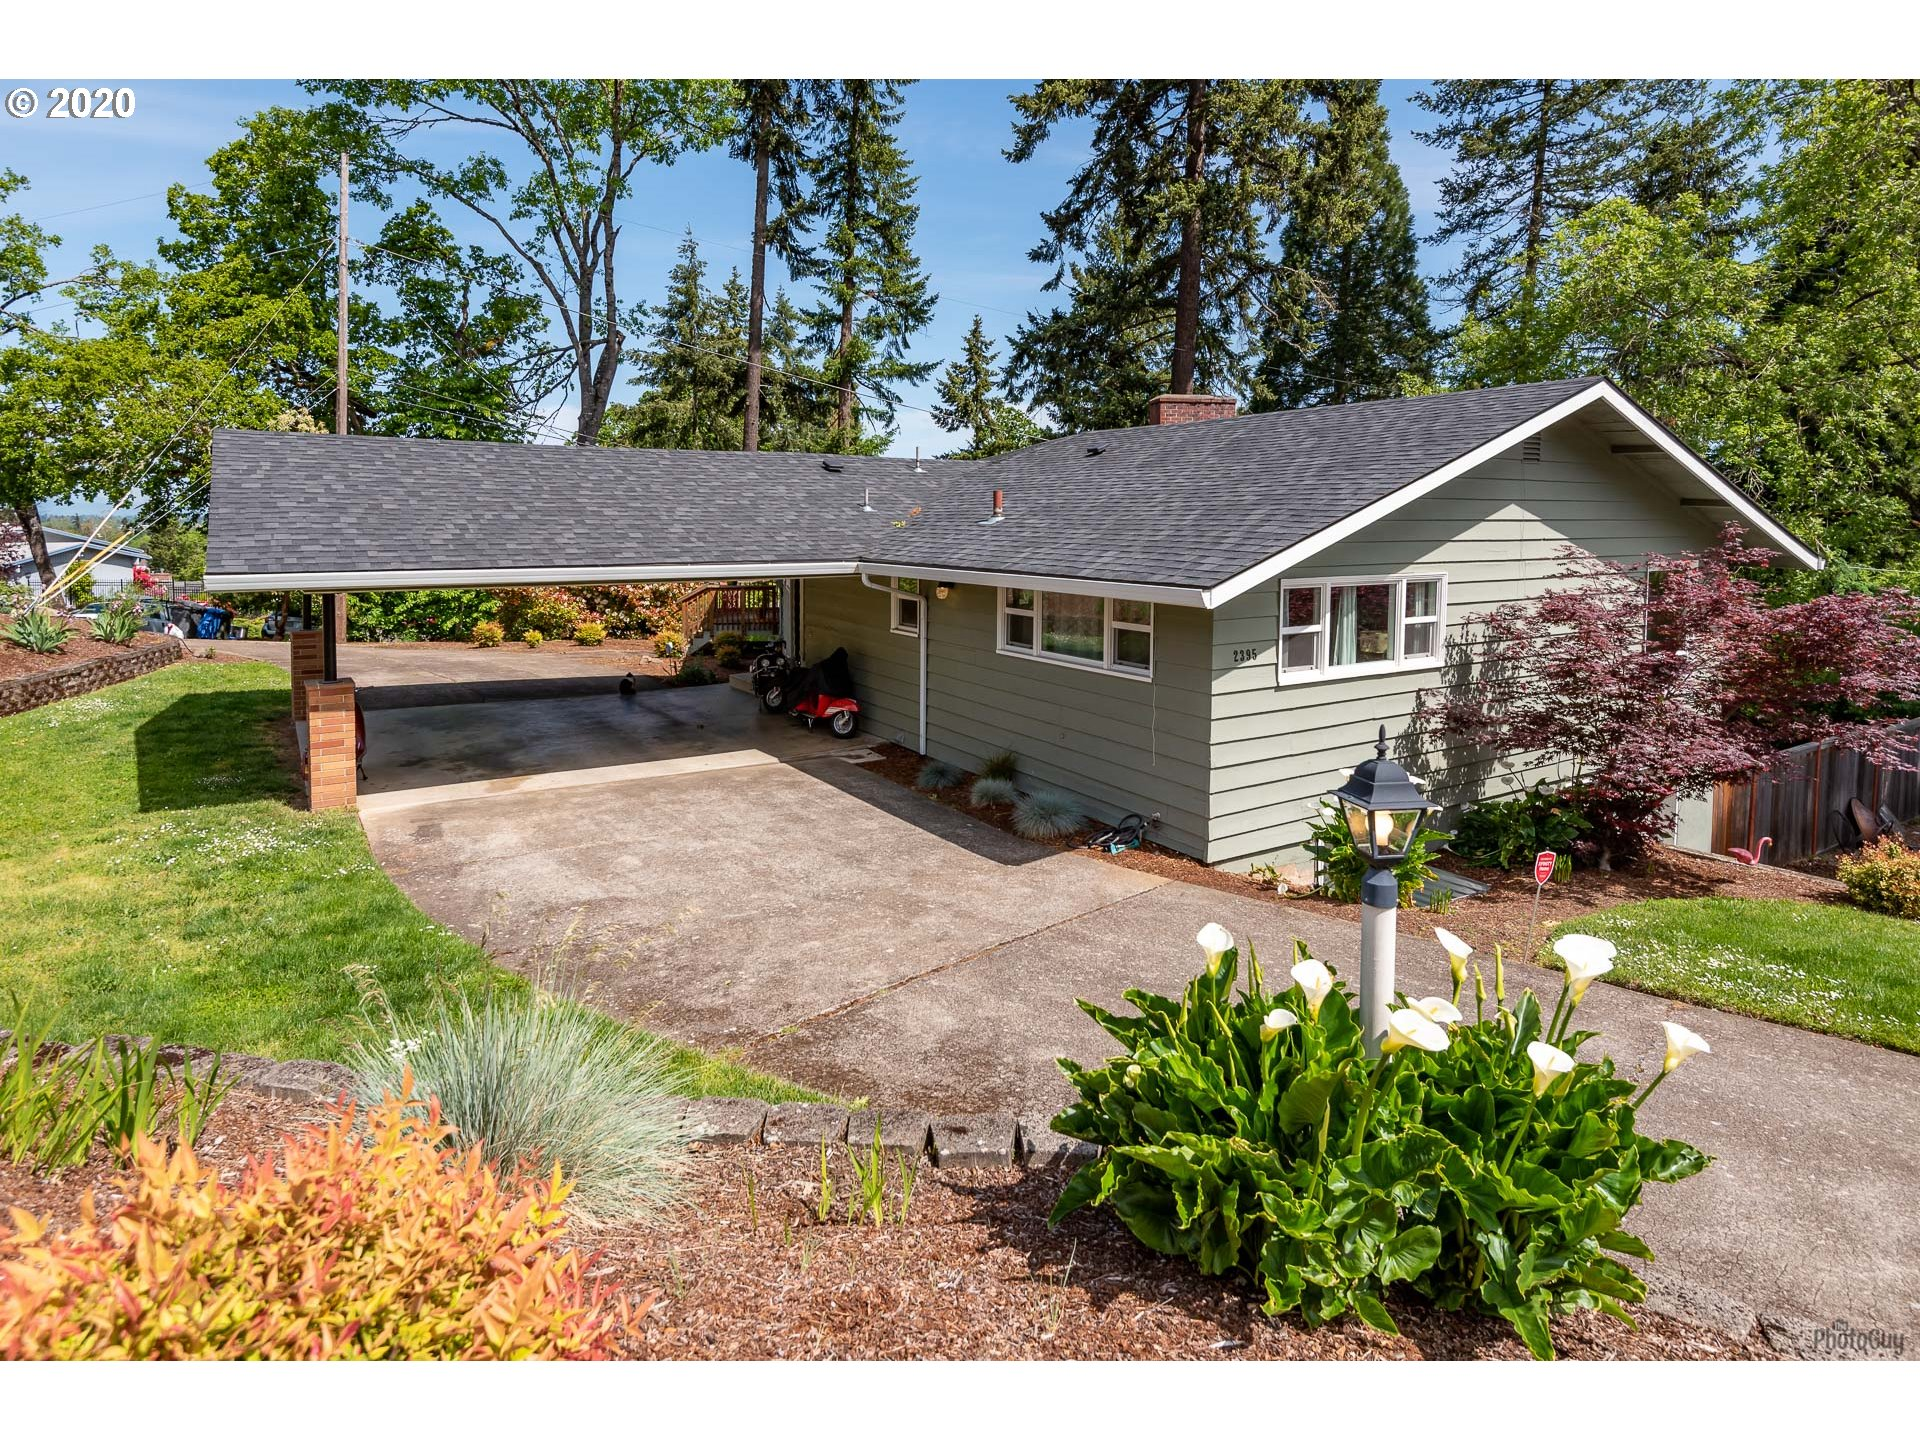 2395 W 23RD AVE, Eugene OR 97405